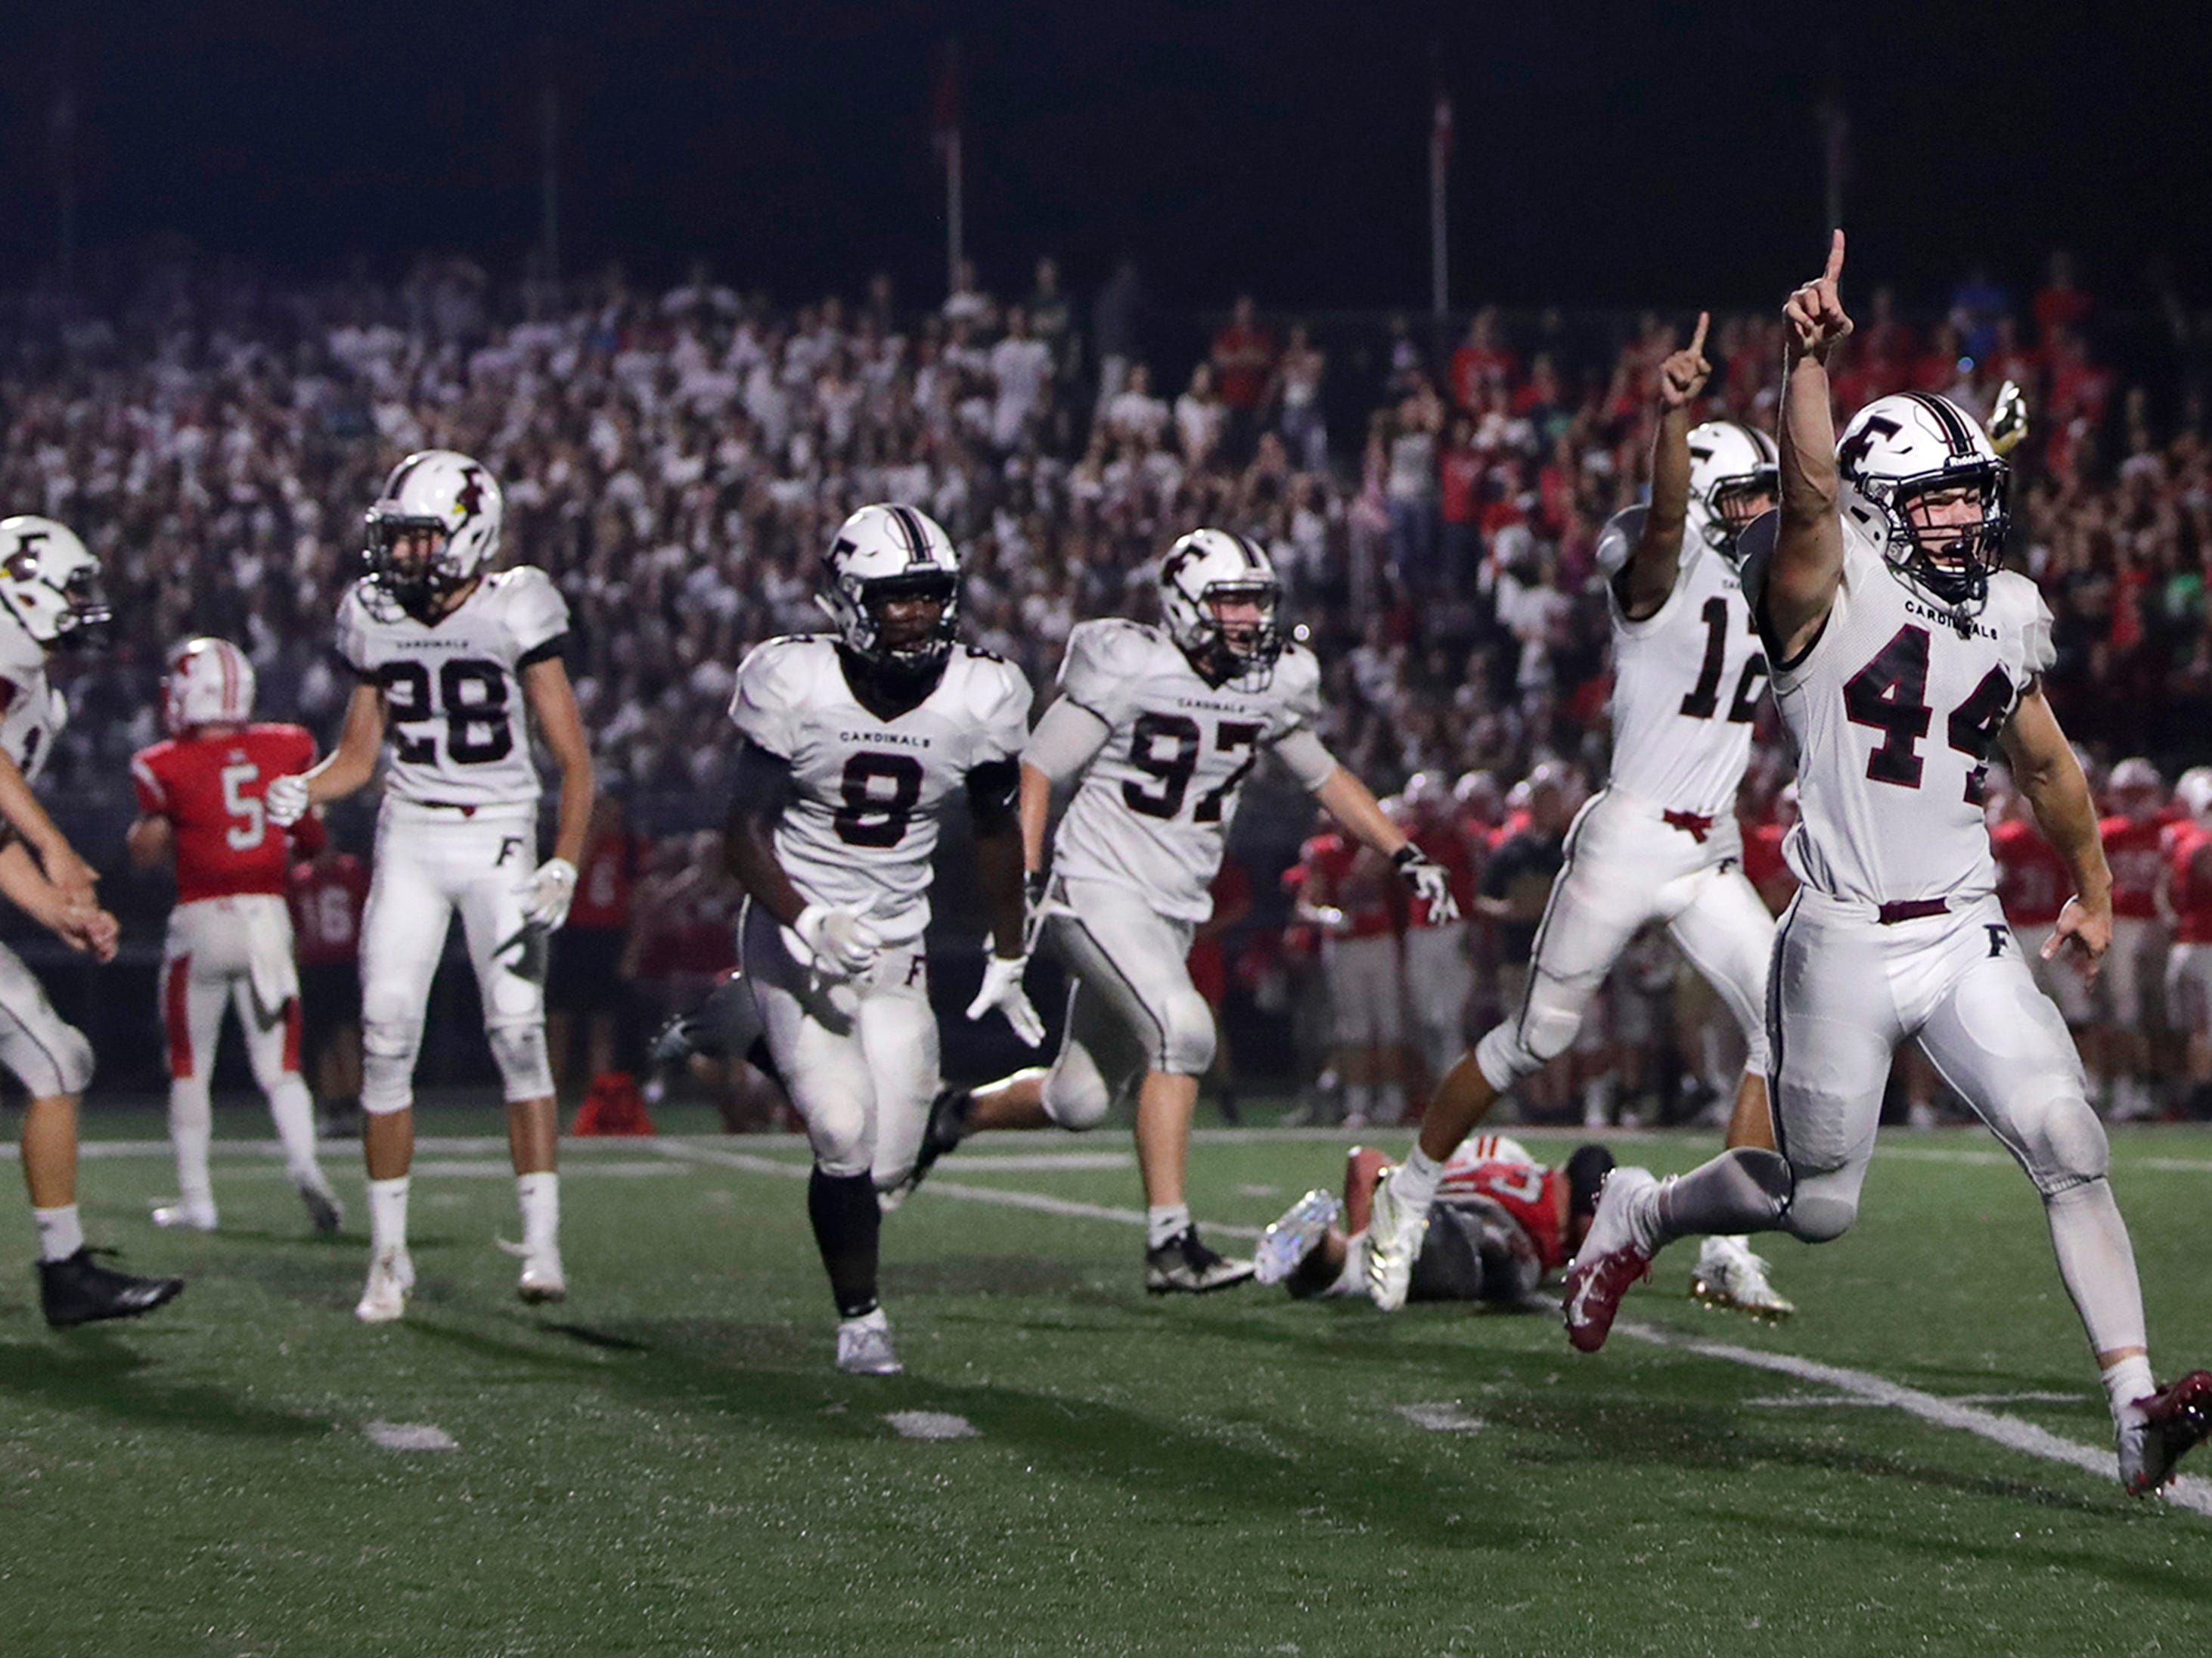 Players from Fond du Lac High School celebrate after winning their game against Kimberly High School 31-28 with a last second field goal Friday, Aug. 17, 2018, in Kimberly, Wis. Kimberly's loss ended their 70-game winning streak.